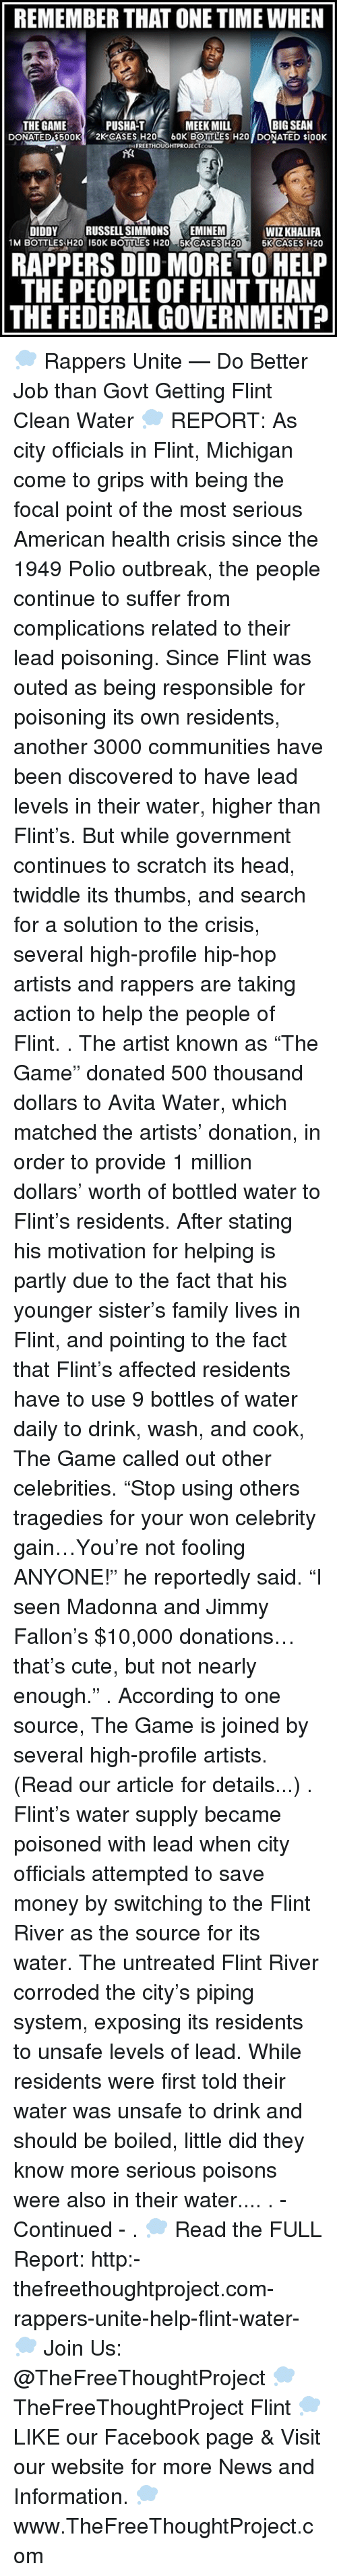 "Big Sean, Eminem, and Jimmy Fallon: REMEMBER THAT ONETIME WHEN  BIG SEAN  THE GAME  PUSHAT  MEEK MILL  DONATED $500K  2K CASES H20 60K BOTTLES H20 DONATED siooK  FREETHOU  OJECT  DIDDY  RUSSELL SIMMONS  F EMINEM  WIZ KHALIFA  M BOTTLES H20 150K BOTTTLES H20  5K CASES H20  5K CASES H20  RAPPERS DID MORE TO HELP  THE PEOPLE OF FLINT THAN  THE FEDERAL GOVERNMENT? 💭 Rappers Unite — Do Better Job than Govt Getting Flint Clean Water 💭 REPORT: As city officials in Flint, Michigan come to grips with being the focal point of the most serious American health crisis since the 1949 Polio outbreak, the people continue to suffer from complications related to their lead poisoning. Since Flint was outed as being responsible for poisoning its own residents, another 3000 communities have been discovered to have lead levels in their water, higher than Flint's. But while government continues to scratch its head, twiddle its thumbs, and search for a solution to the crisis, several high-profile hip-hop artists and rappers are taking action to help the people of Flint. . The artist known as ""The Game"" donated 500 thousand dollars to Avita Water, which matched the artists' donation, in order to provide 1 million dollars' worth of bottled water to Flint's residents. After stating his motivation for helping is partly due to the fact that his younger sister's family lives in Flint, and pointing to the fact that Flint's affected residents have to use 9 bottles of water daily to drink, wash, and cook, The Game called out other celebrities. ""Stop using others tragedies for your won celebrity gain…You're not fooling ANYONE!"" he reportedly said. ""I seen Madonna and Jimmy Fallon's $10,000 donations…that's cute, but not nearly enough."" . According to one source, The Game is joined by several high-profile artists. (Read our article for details...) . Flint's water supply became poisoned with lead when city officials attempted to save money by switching to the Flint River as the source for its water. The untreated Flint River corroded the city's piping system, exposing its residents to unsafe levels of lead. While residents were first told their water was unsafe to drink and should be boiled, little did they know more serious poisons were also in their water.... . - Continued - . 💭 Read the FULL Report: http:-thefreethoughtproject.com-rappers-unite-help-flint-water- 💭 Join Us: @TheFreeThoughtProject 💭 TheFreeThoughtProject Flint 💭 LIKE our Facebook page & Visit our website for more News and Information. 💭 www.TheFreeThoughtProject.com"